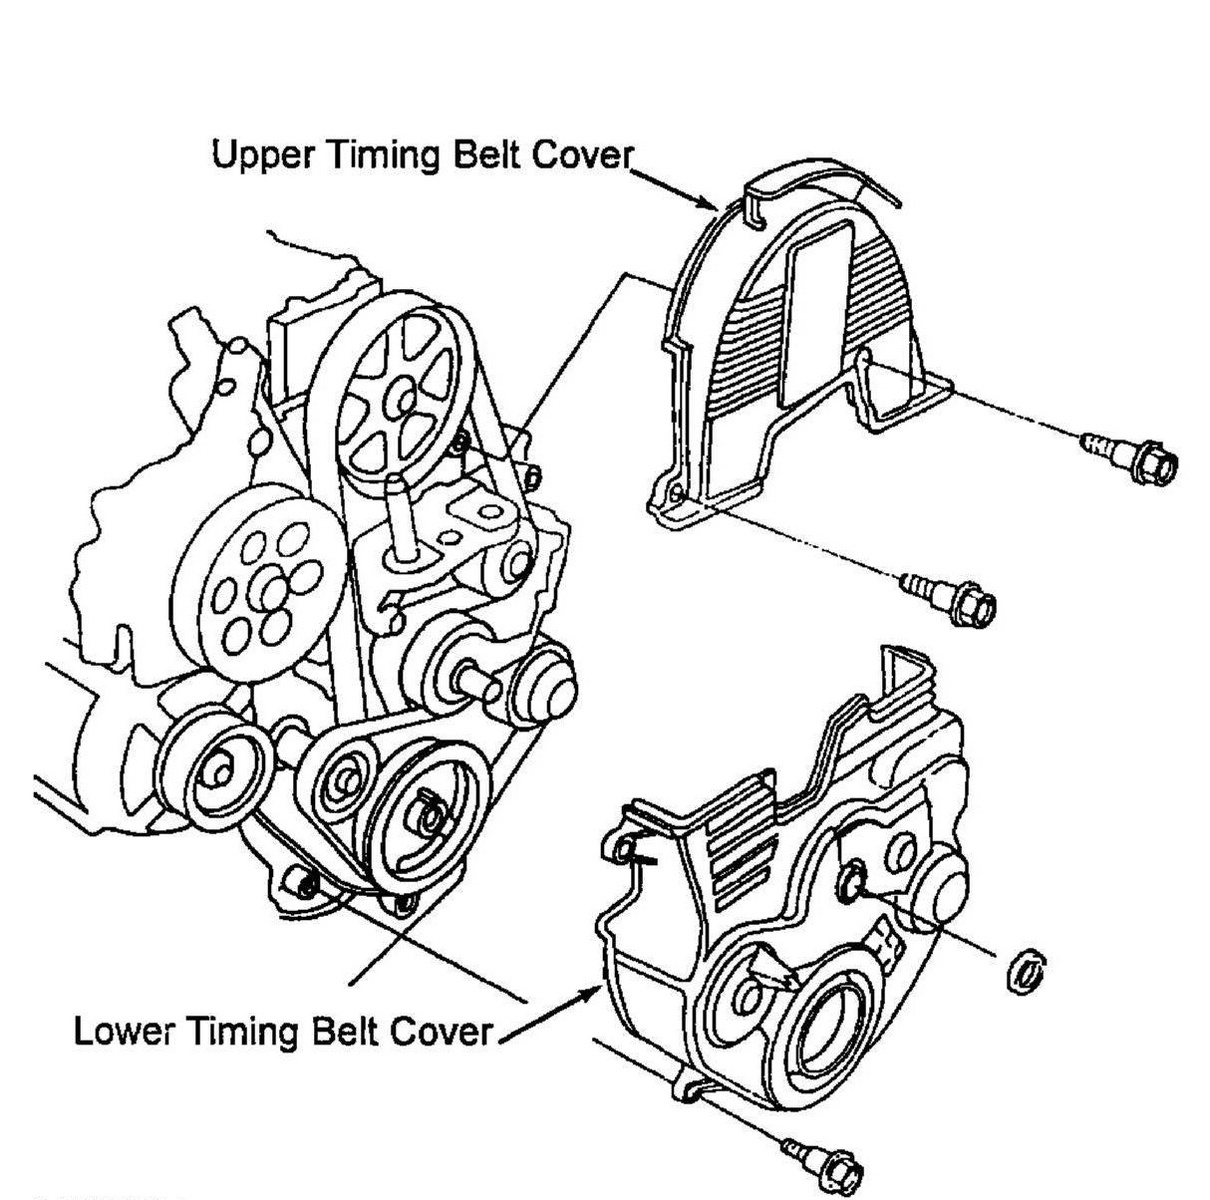 97 Honda Accord Tdc Sensor Location